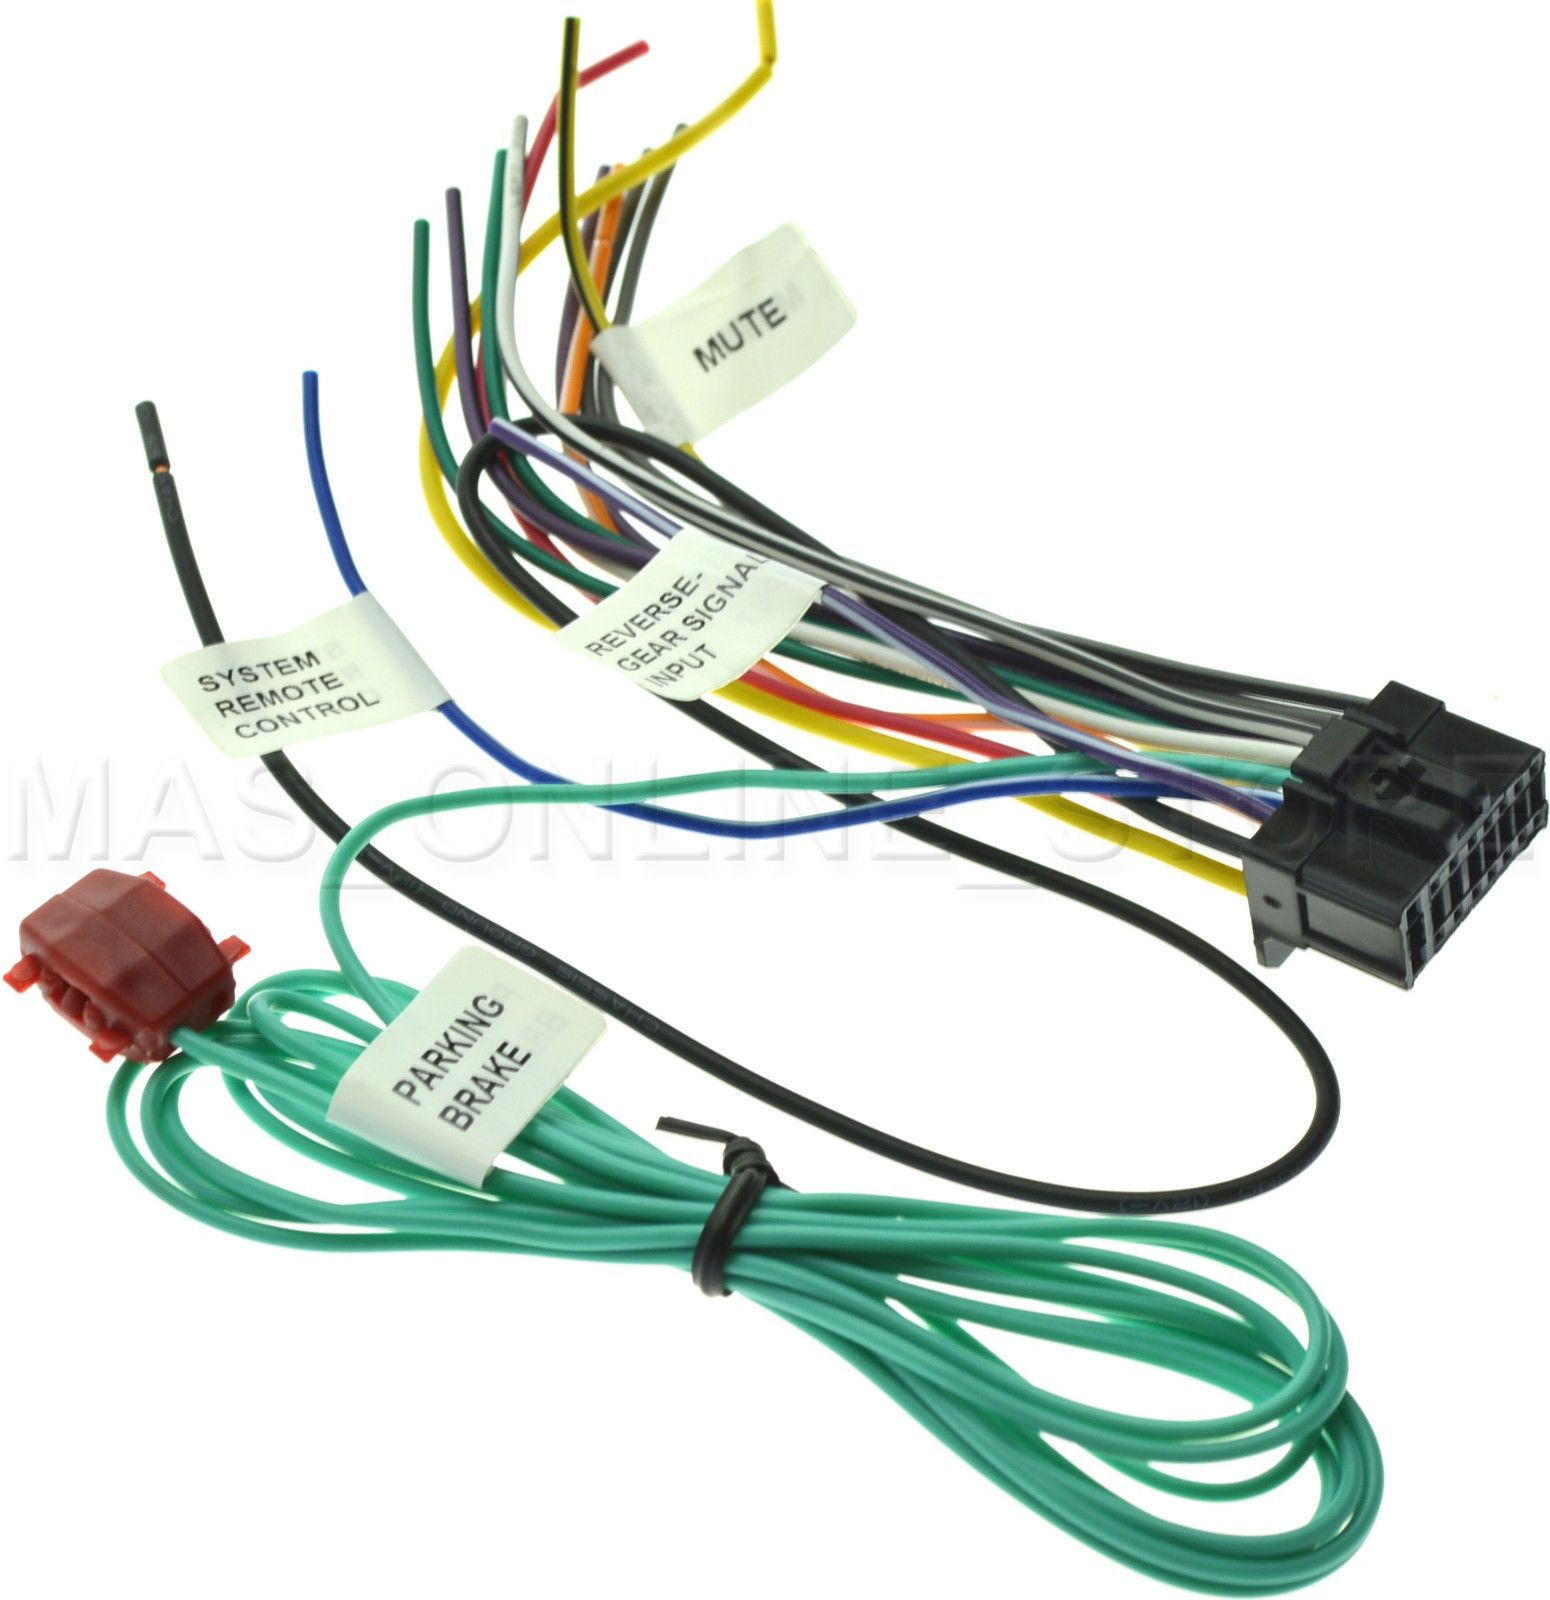 12 91 wire harness for pioneer avh p8400bh avhp8400bh pay today ships today ebay [ 1550 x 1600 Pixel ]